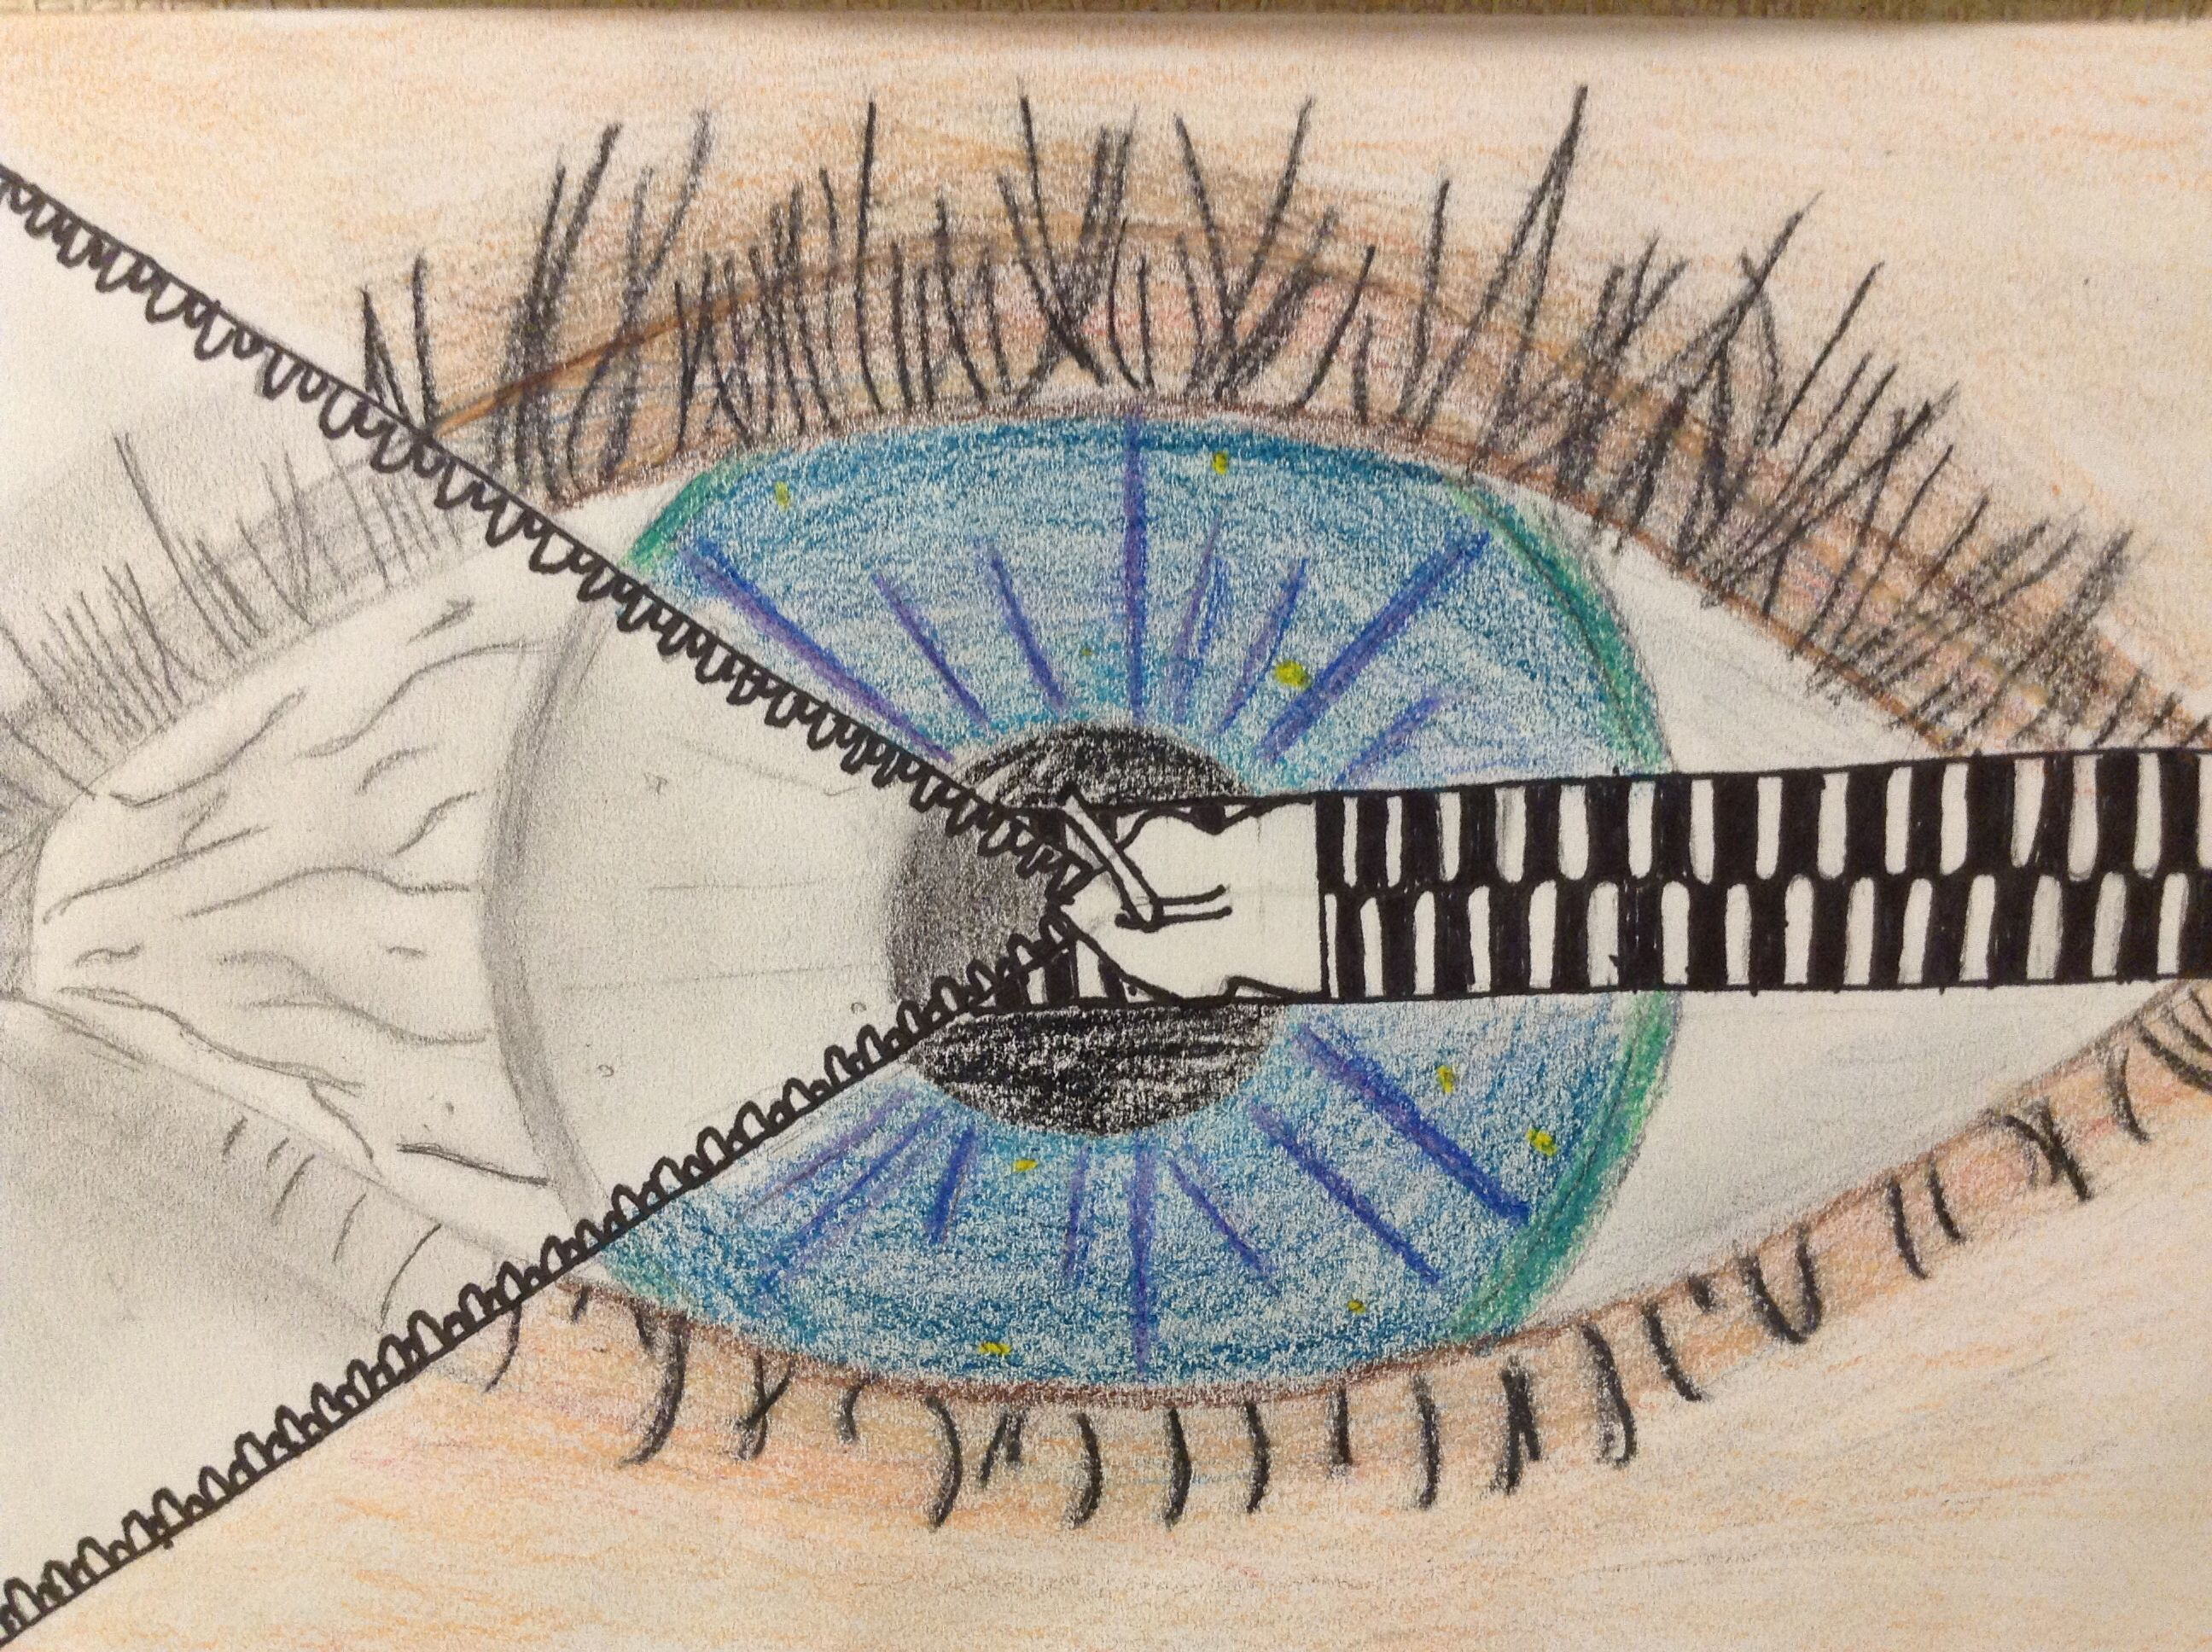 2592x1936 Surreal Eye, Middle School Drawing Class, Inspired By Magritte